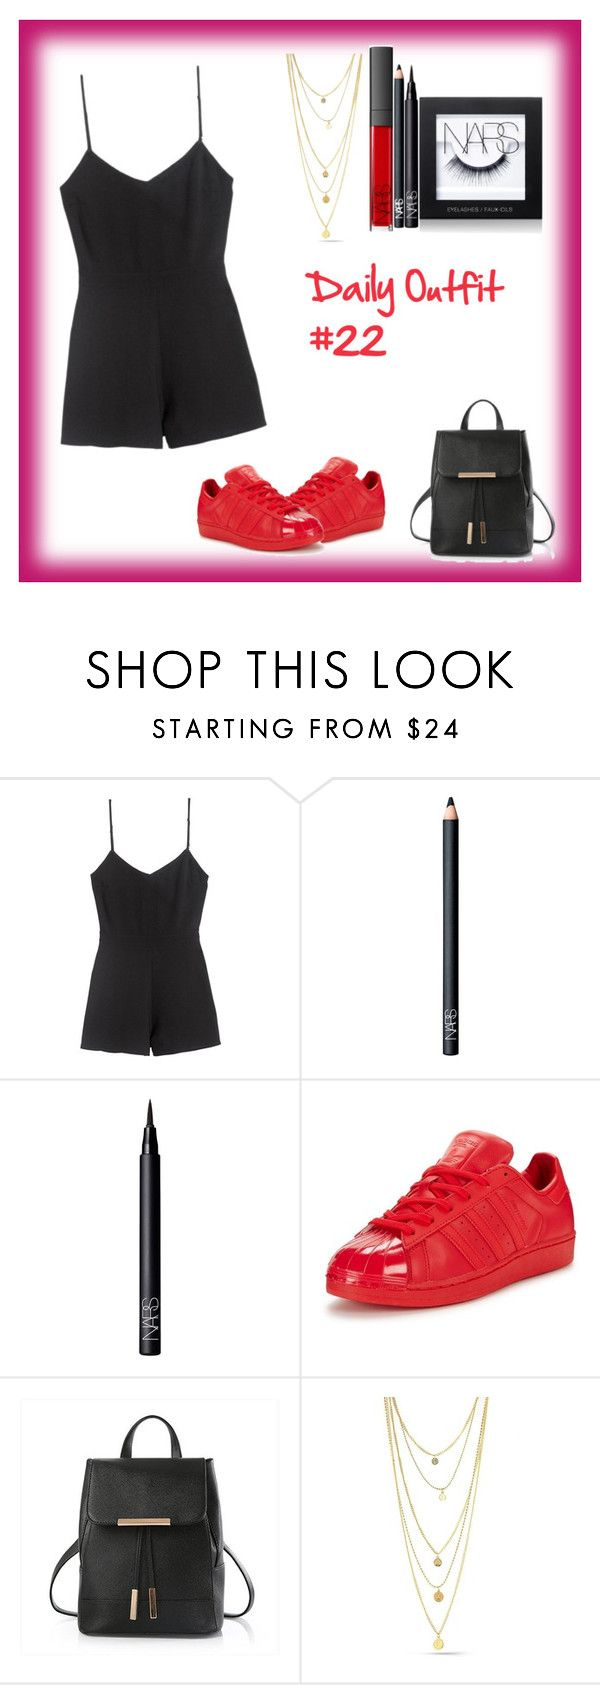 """Daily Outfit  #22"" by niaoffcal ❤ liked on Polyvore featuring NARS Cosmetics and adidas Originals"